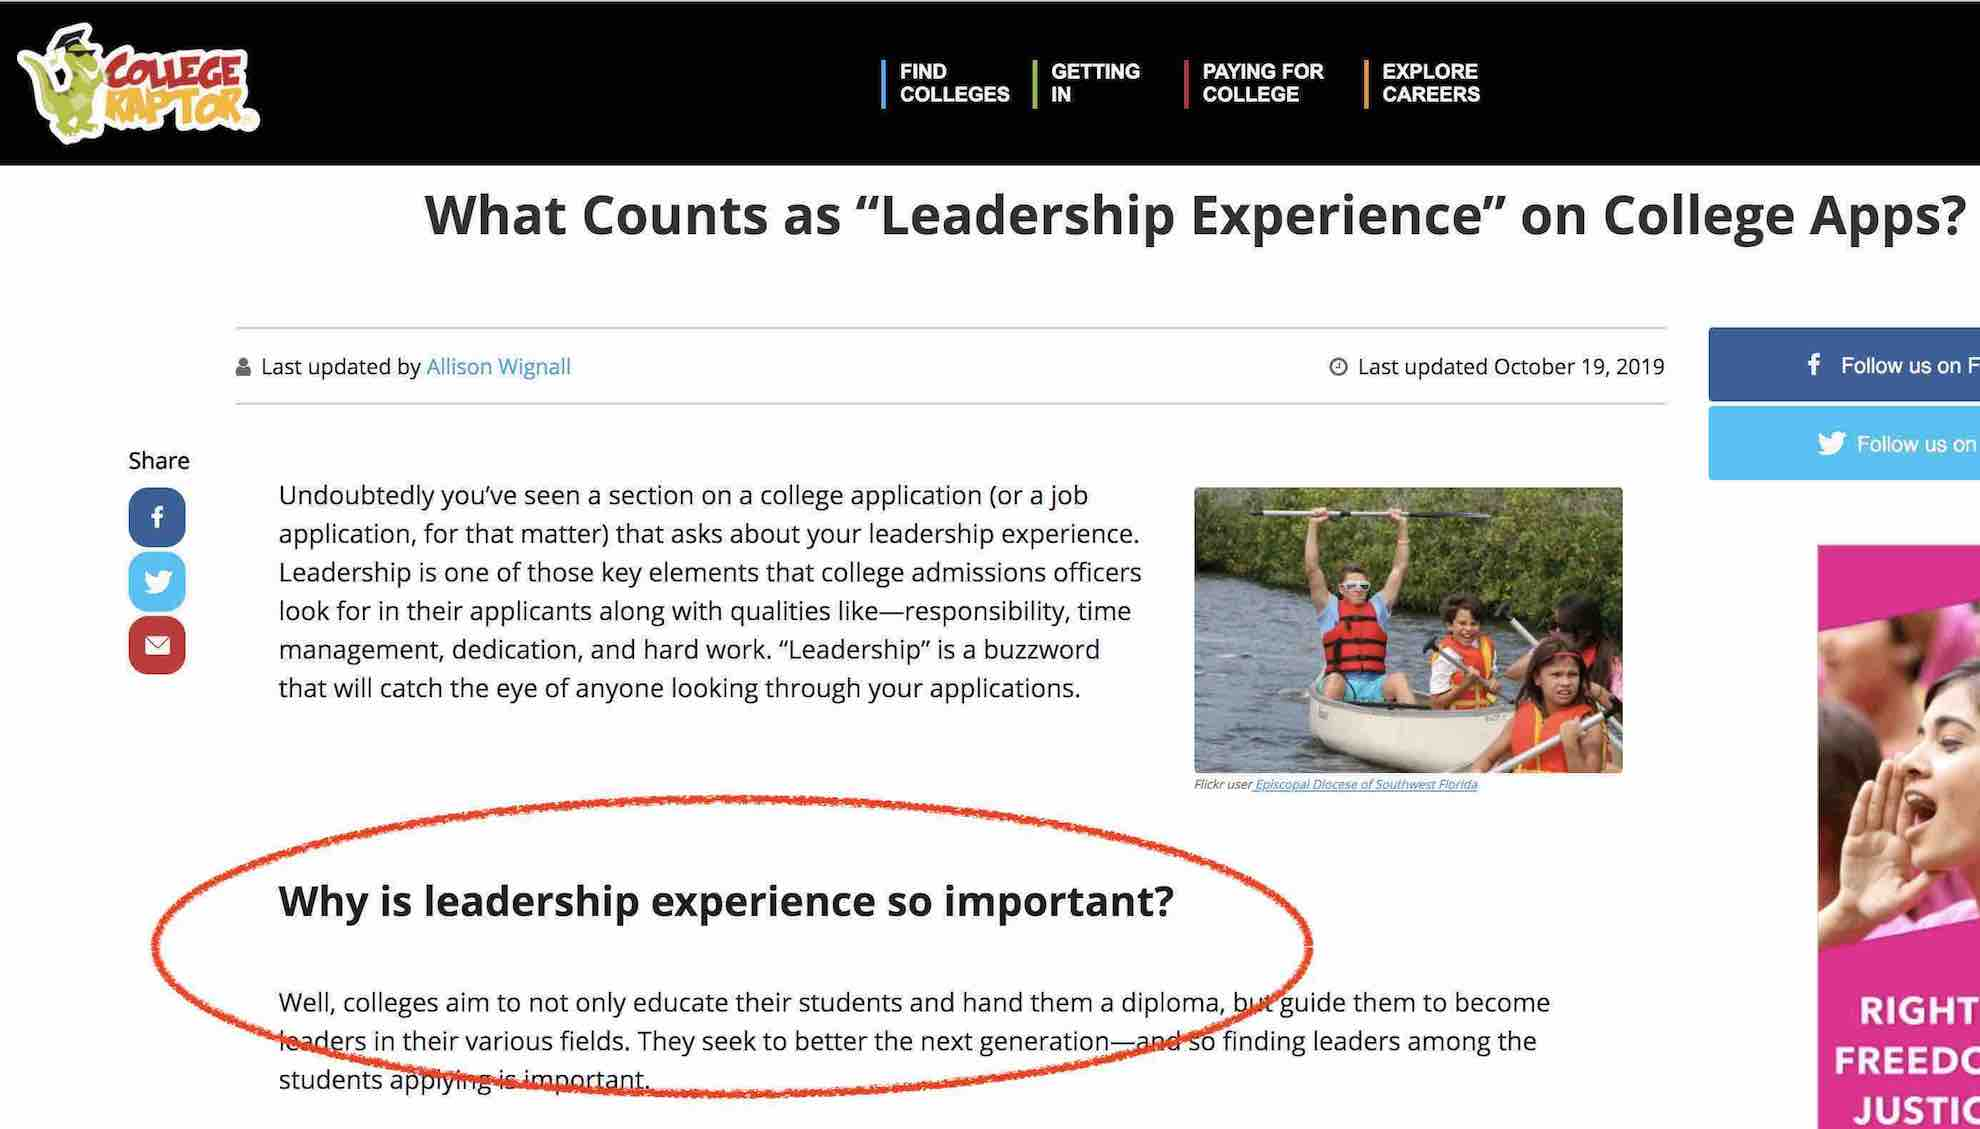 Leadership is sought after